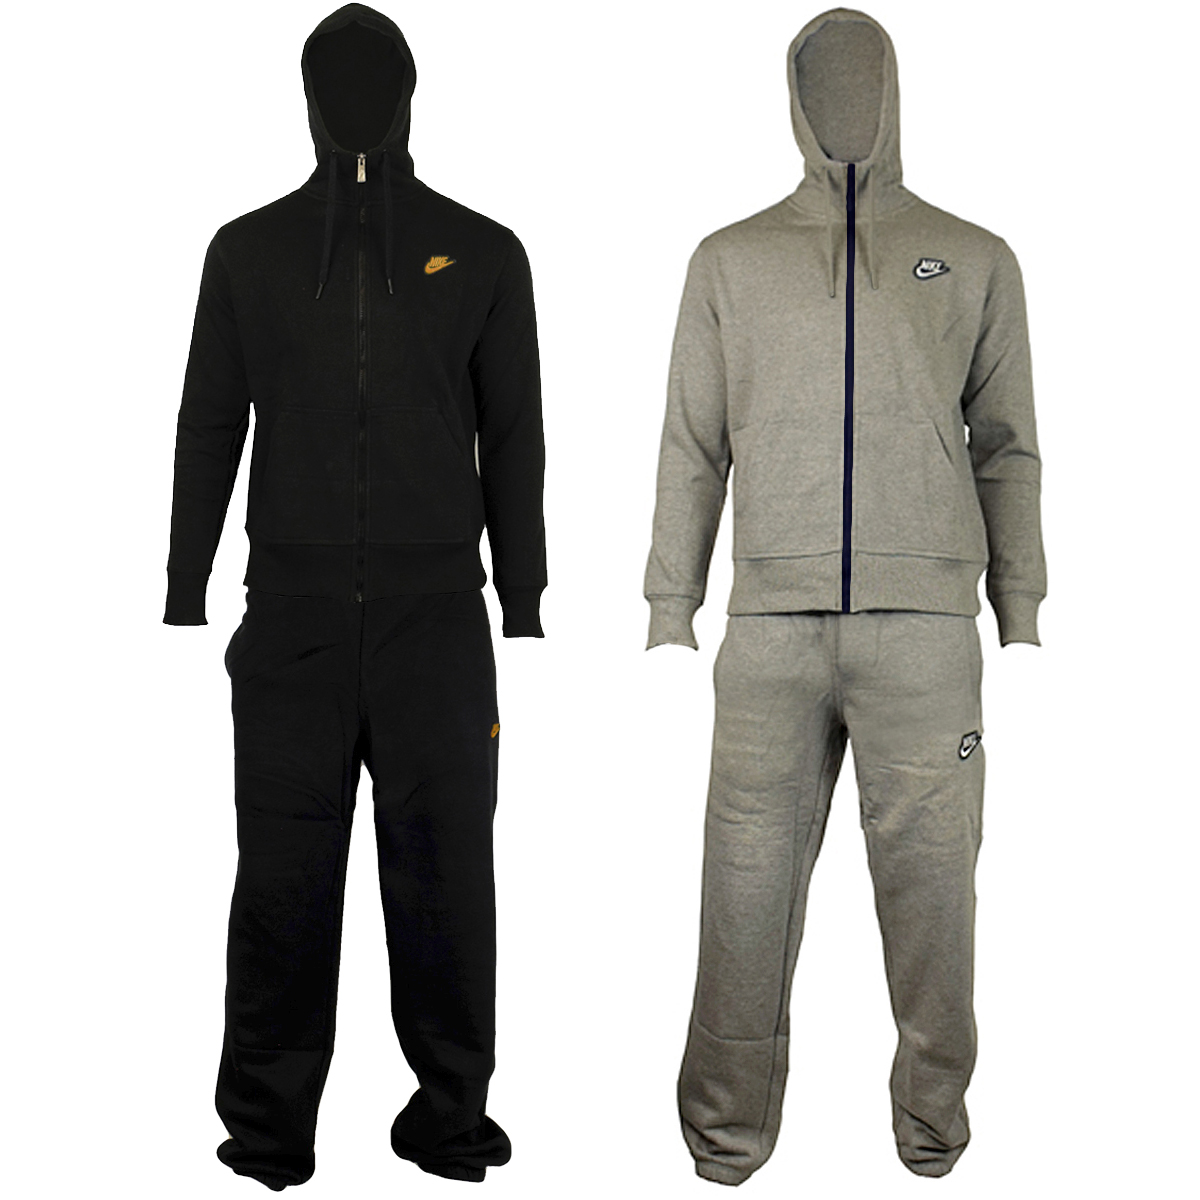 Jogging Suit Baby Kids Nike Images Frompo